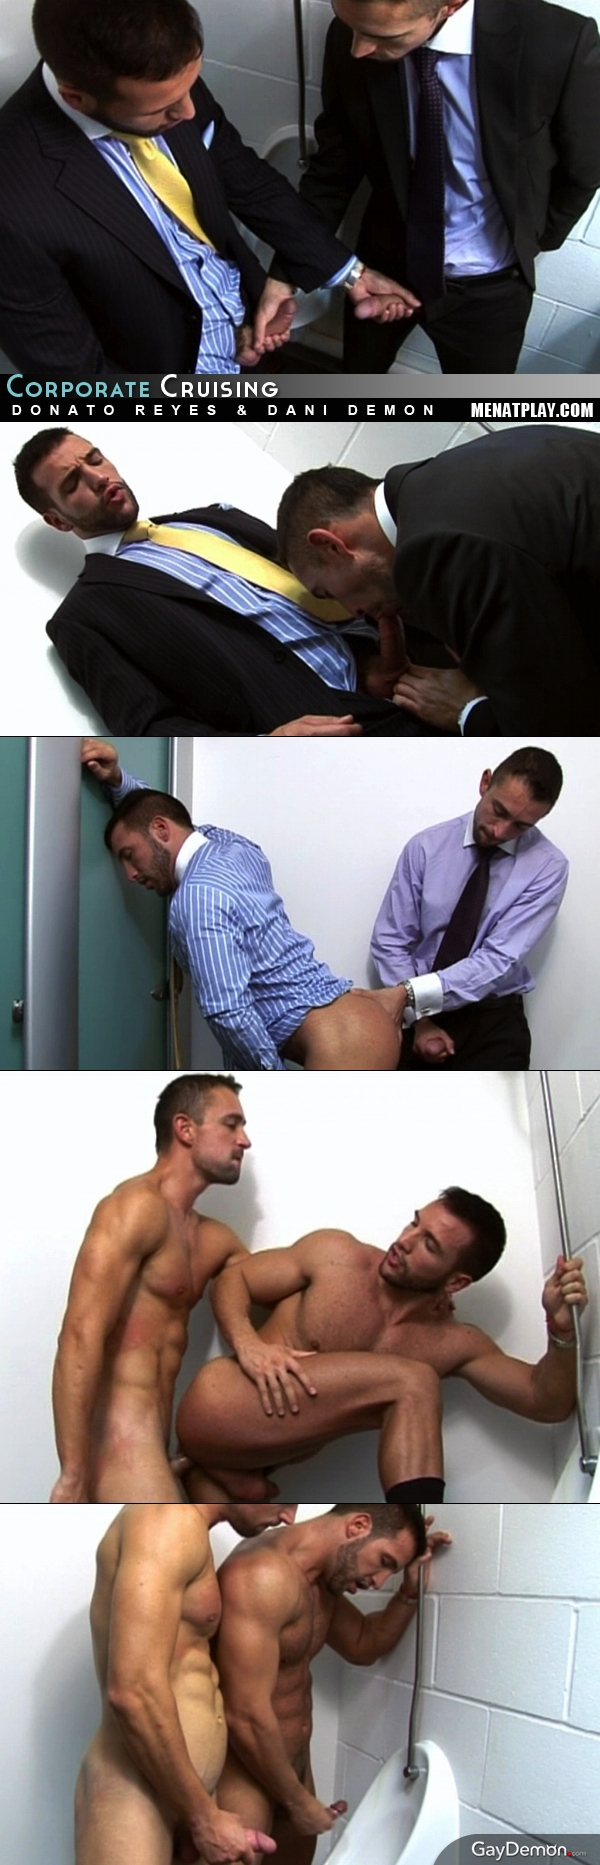 Gay mens room sex pictures